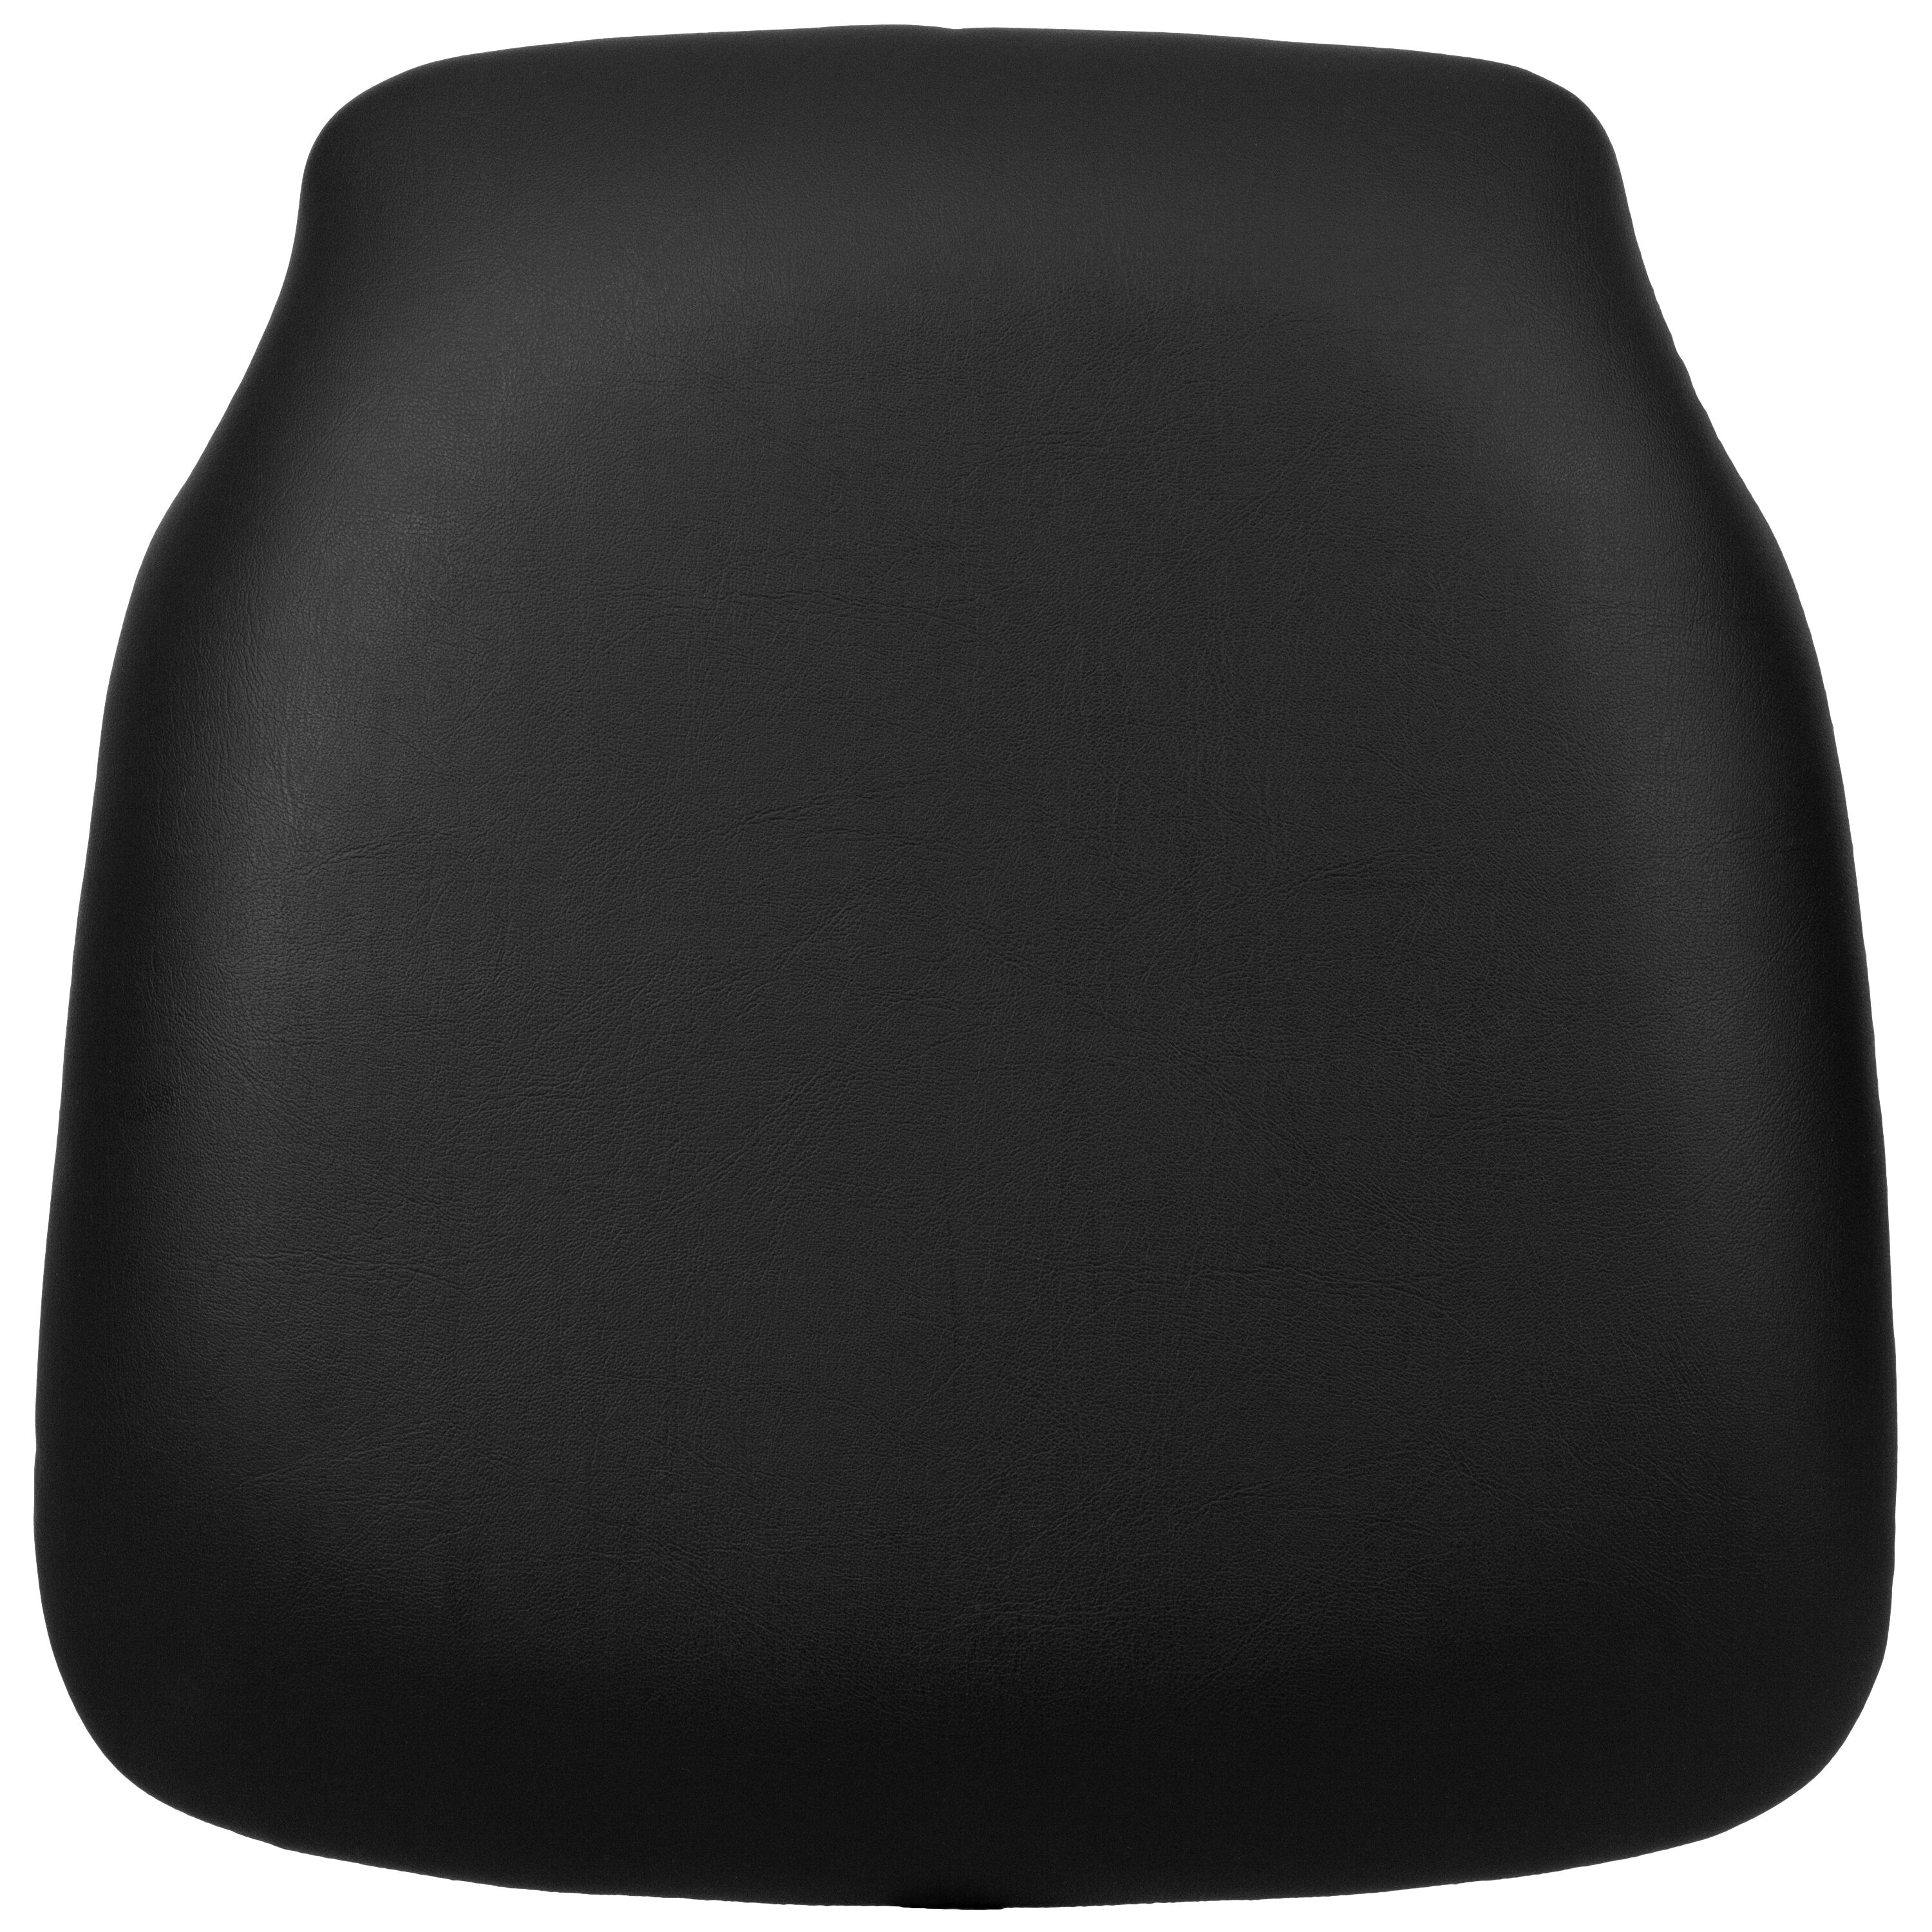 vinyl chair cushion covers herman miller celle black sz hd gg